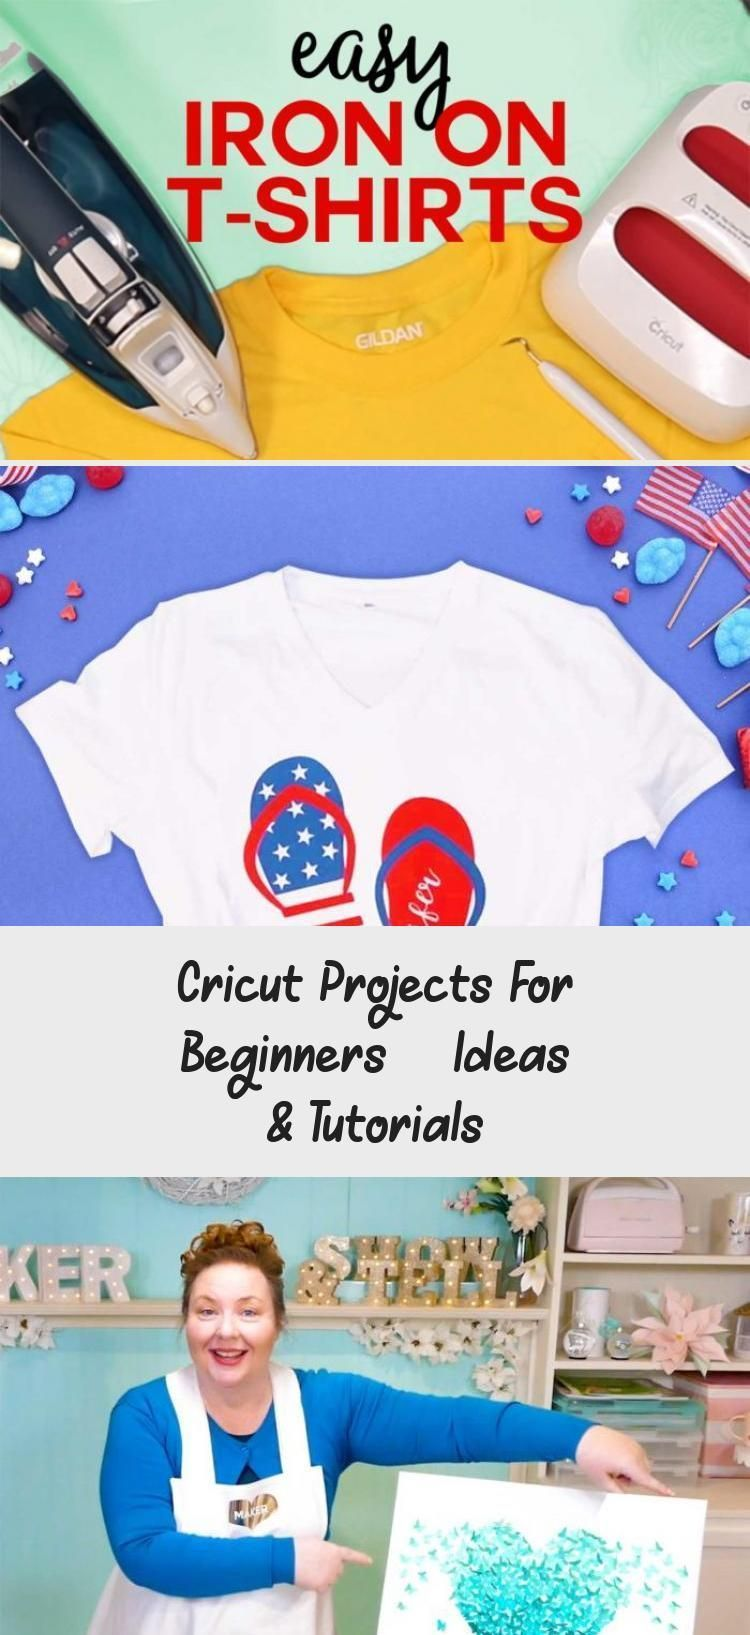 Cricut Projects For Beginners – Ideas & Tutorials #cricutexploreair2projects Cricut Projects for Beginners with ideas and tutorials for Cricut Maker and Cricut Explore Air 2 - Free Files & Craft Projects! #cricut #svgfiles #cricutprojects #cricutcrafts #cricutforbeginners #cricutideasForCups #cricutideasSigns #Nursecricutideas #cricutideasPaper #cricutideasTutorials #cricutexploreair2projects Cricut Projects For Beginners – Ideas & Tutorials #cricutexploreair2projects Cricut Projects for Beg #cricutexploreair2projects